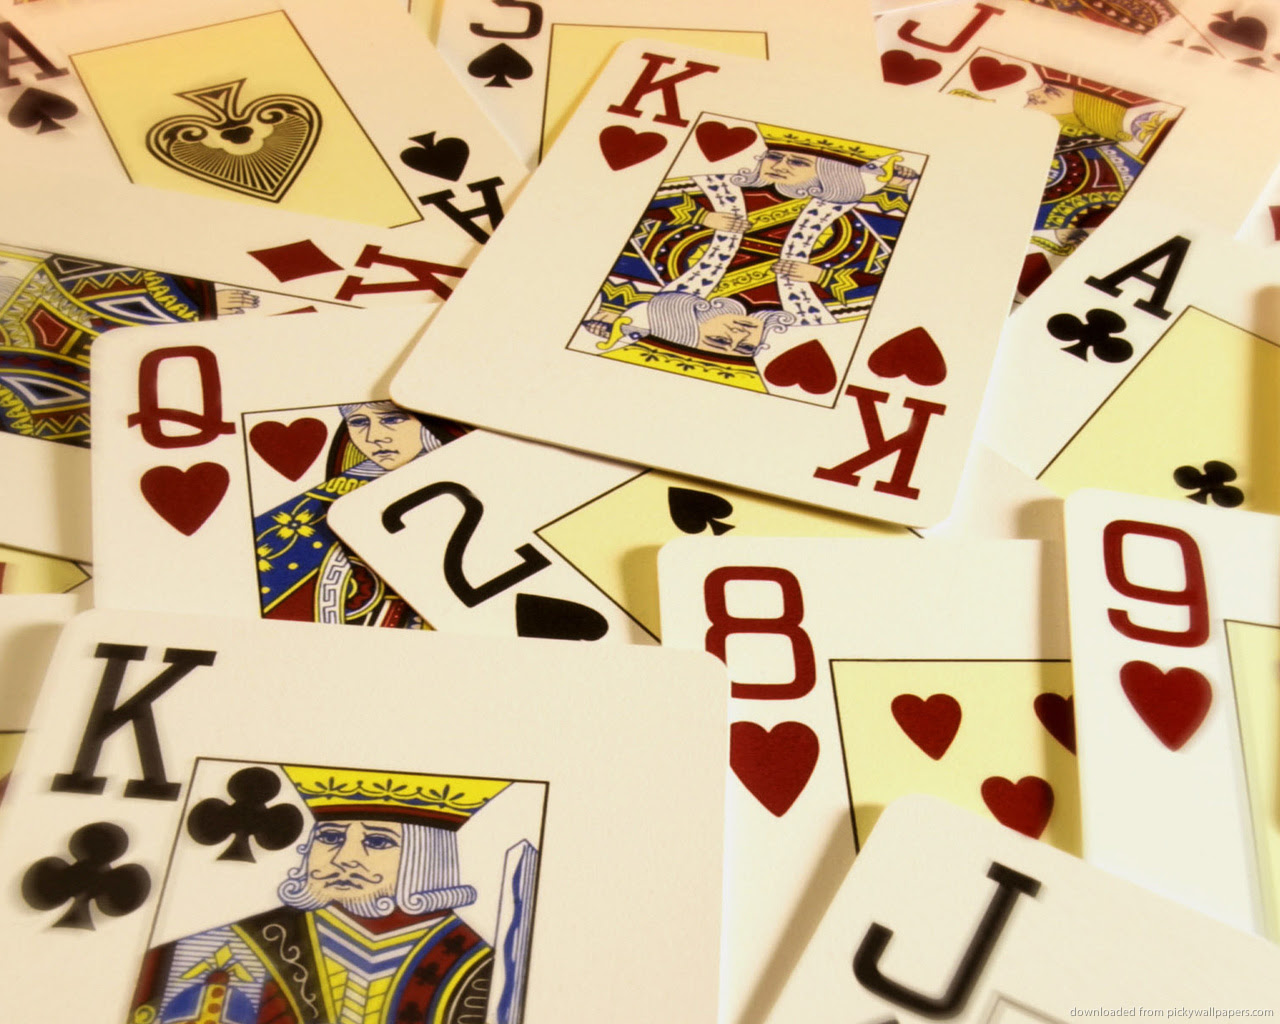 Download 1280x1024 Poker Cards Wallpaper Clip Art Library